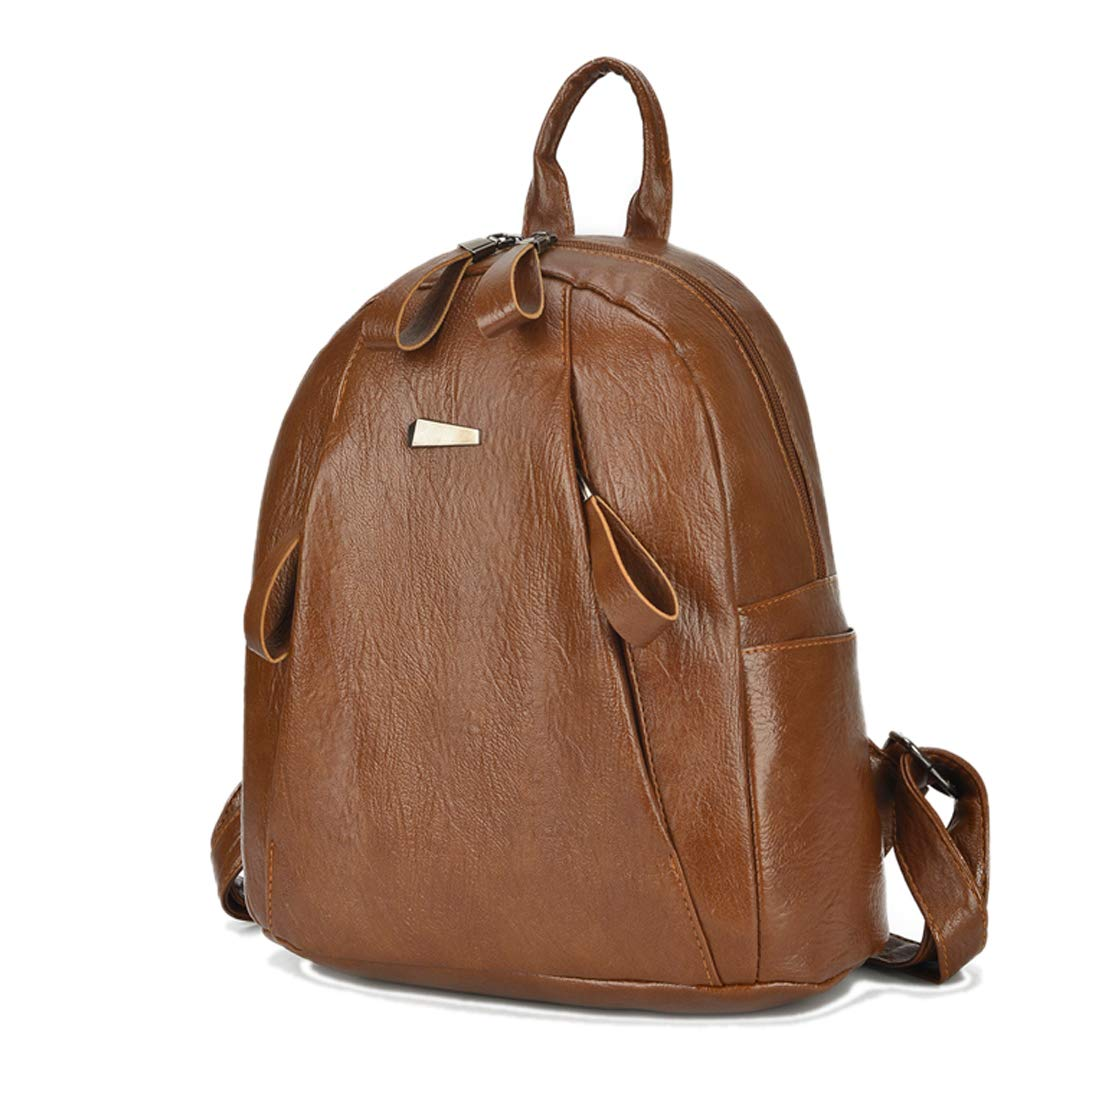 Artwell Women Backpack Purse PU Washed Leather Casual Ladies Rucksack Shoulder Bag with 2 Front Zipper Pocket (Brown)